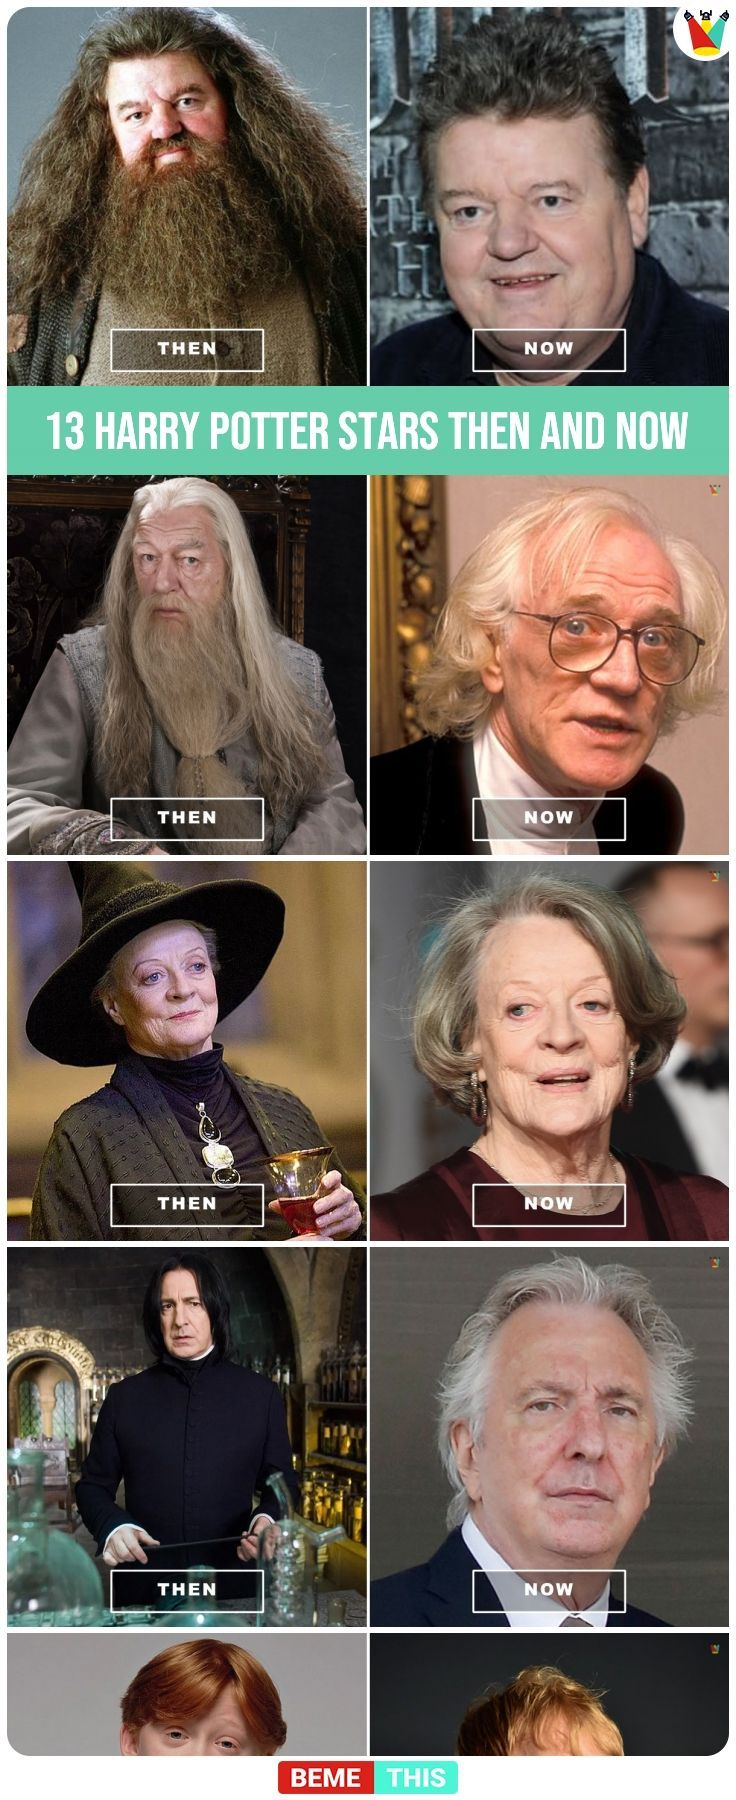 13 Harry Potter Stars Then And Now Harrypotter Thenandnow Harrypotterstars Hollywood Harrypottercast Harry Potter Quizzes Harry Potter Cast Harry Potter